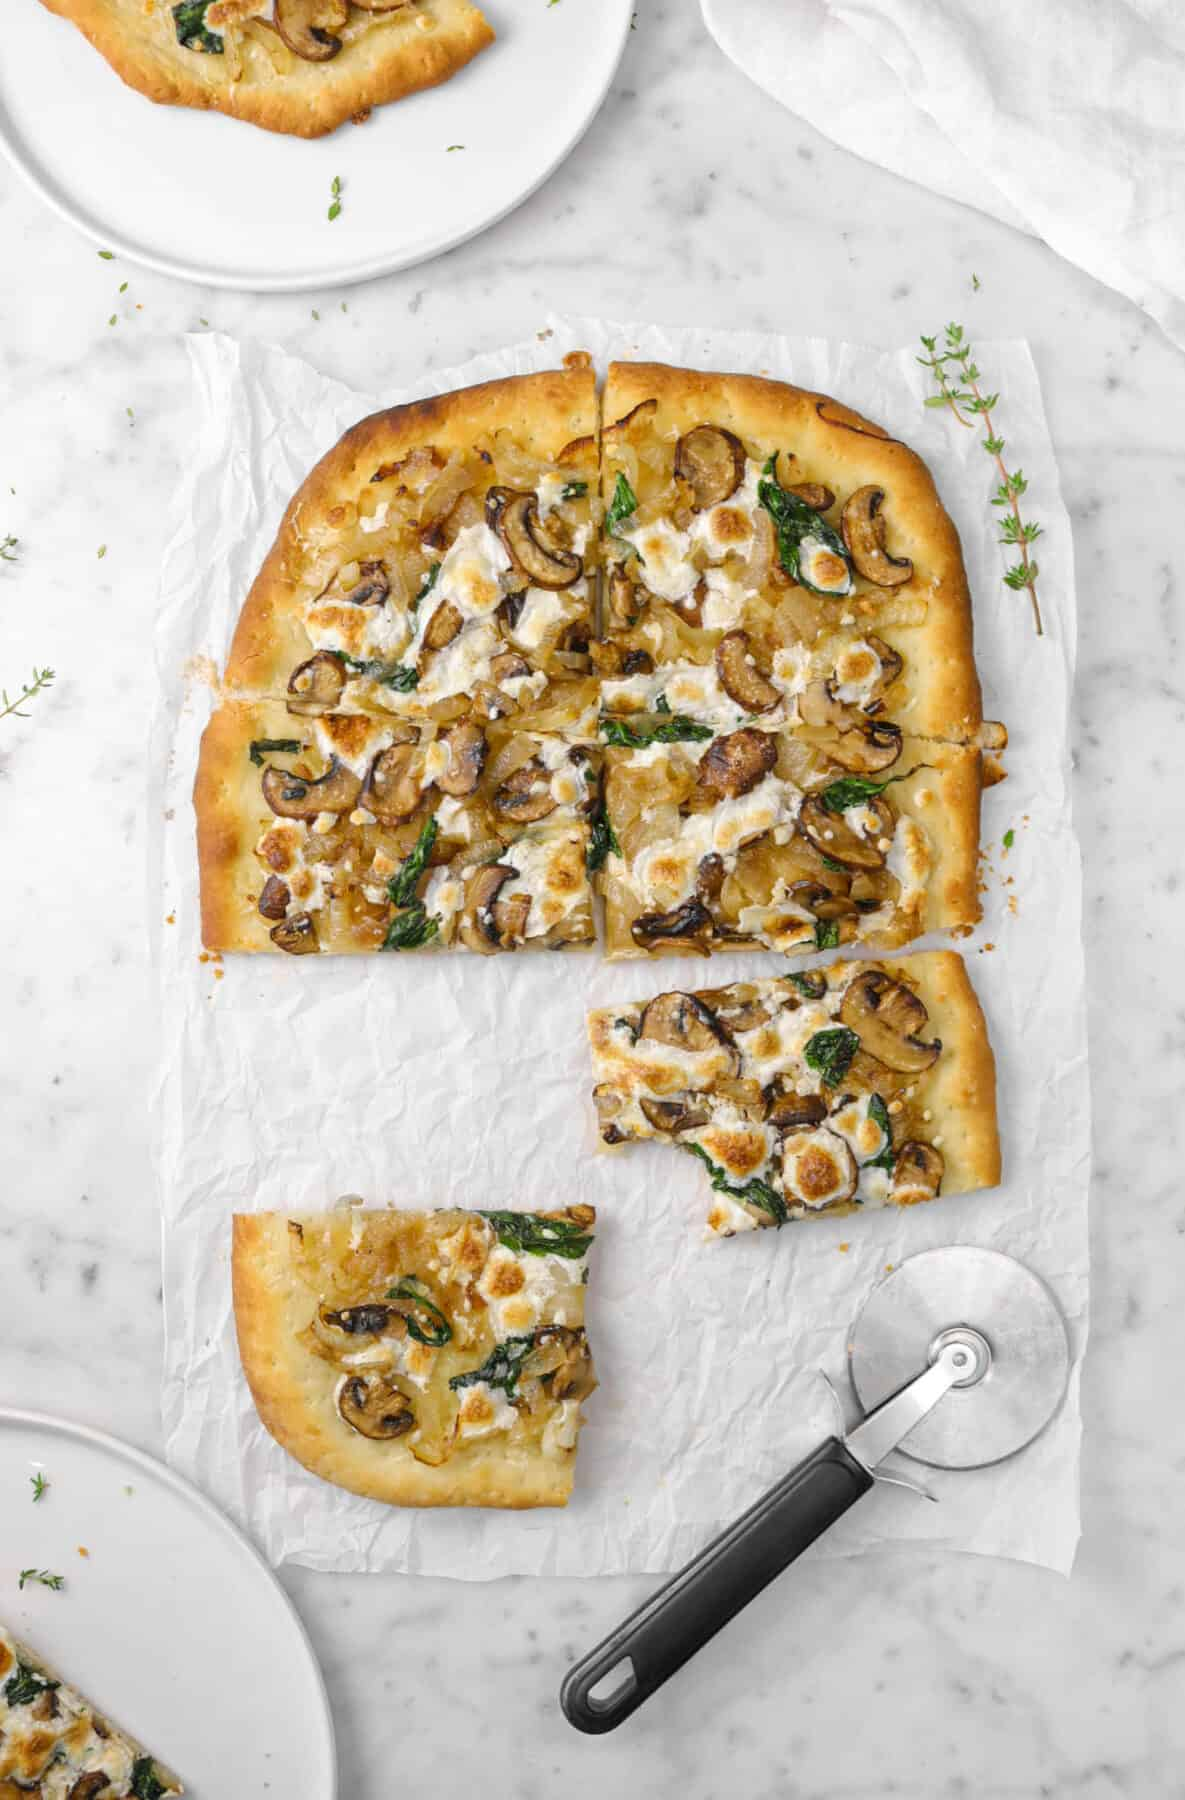 flatbread on parchment with thyme sprigs, pizza cutter, and two pieces on white plates